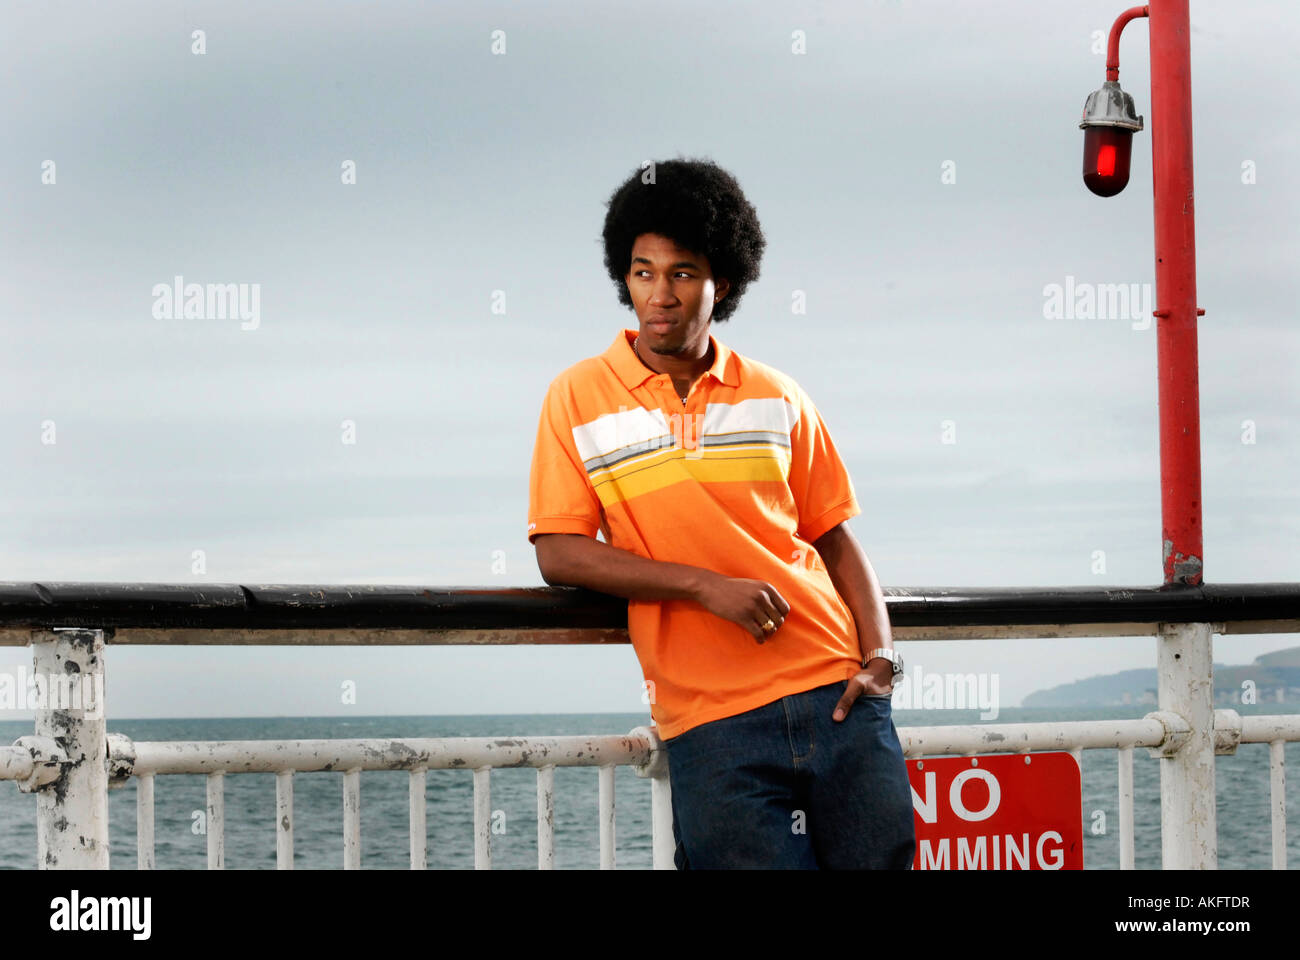 A young cool black man leaning against a rail at the end of Bournemouth Pier with a red light next to him. - Stock Image